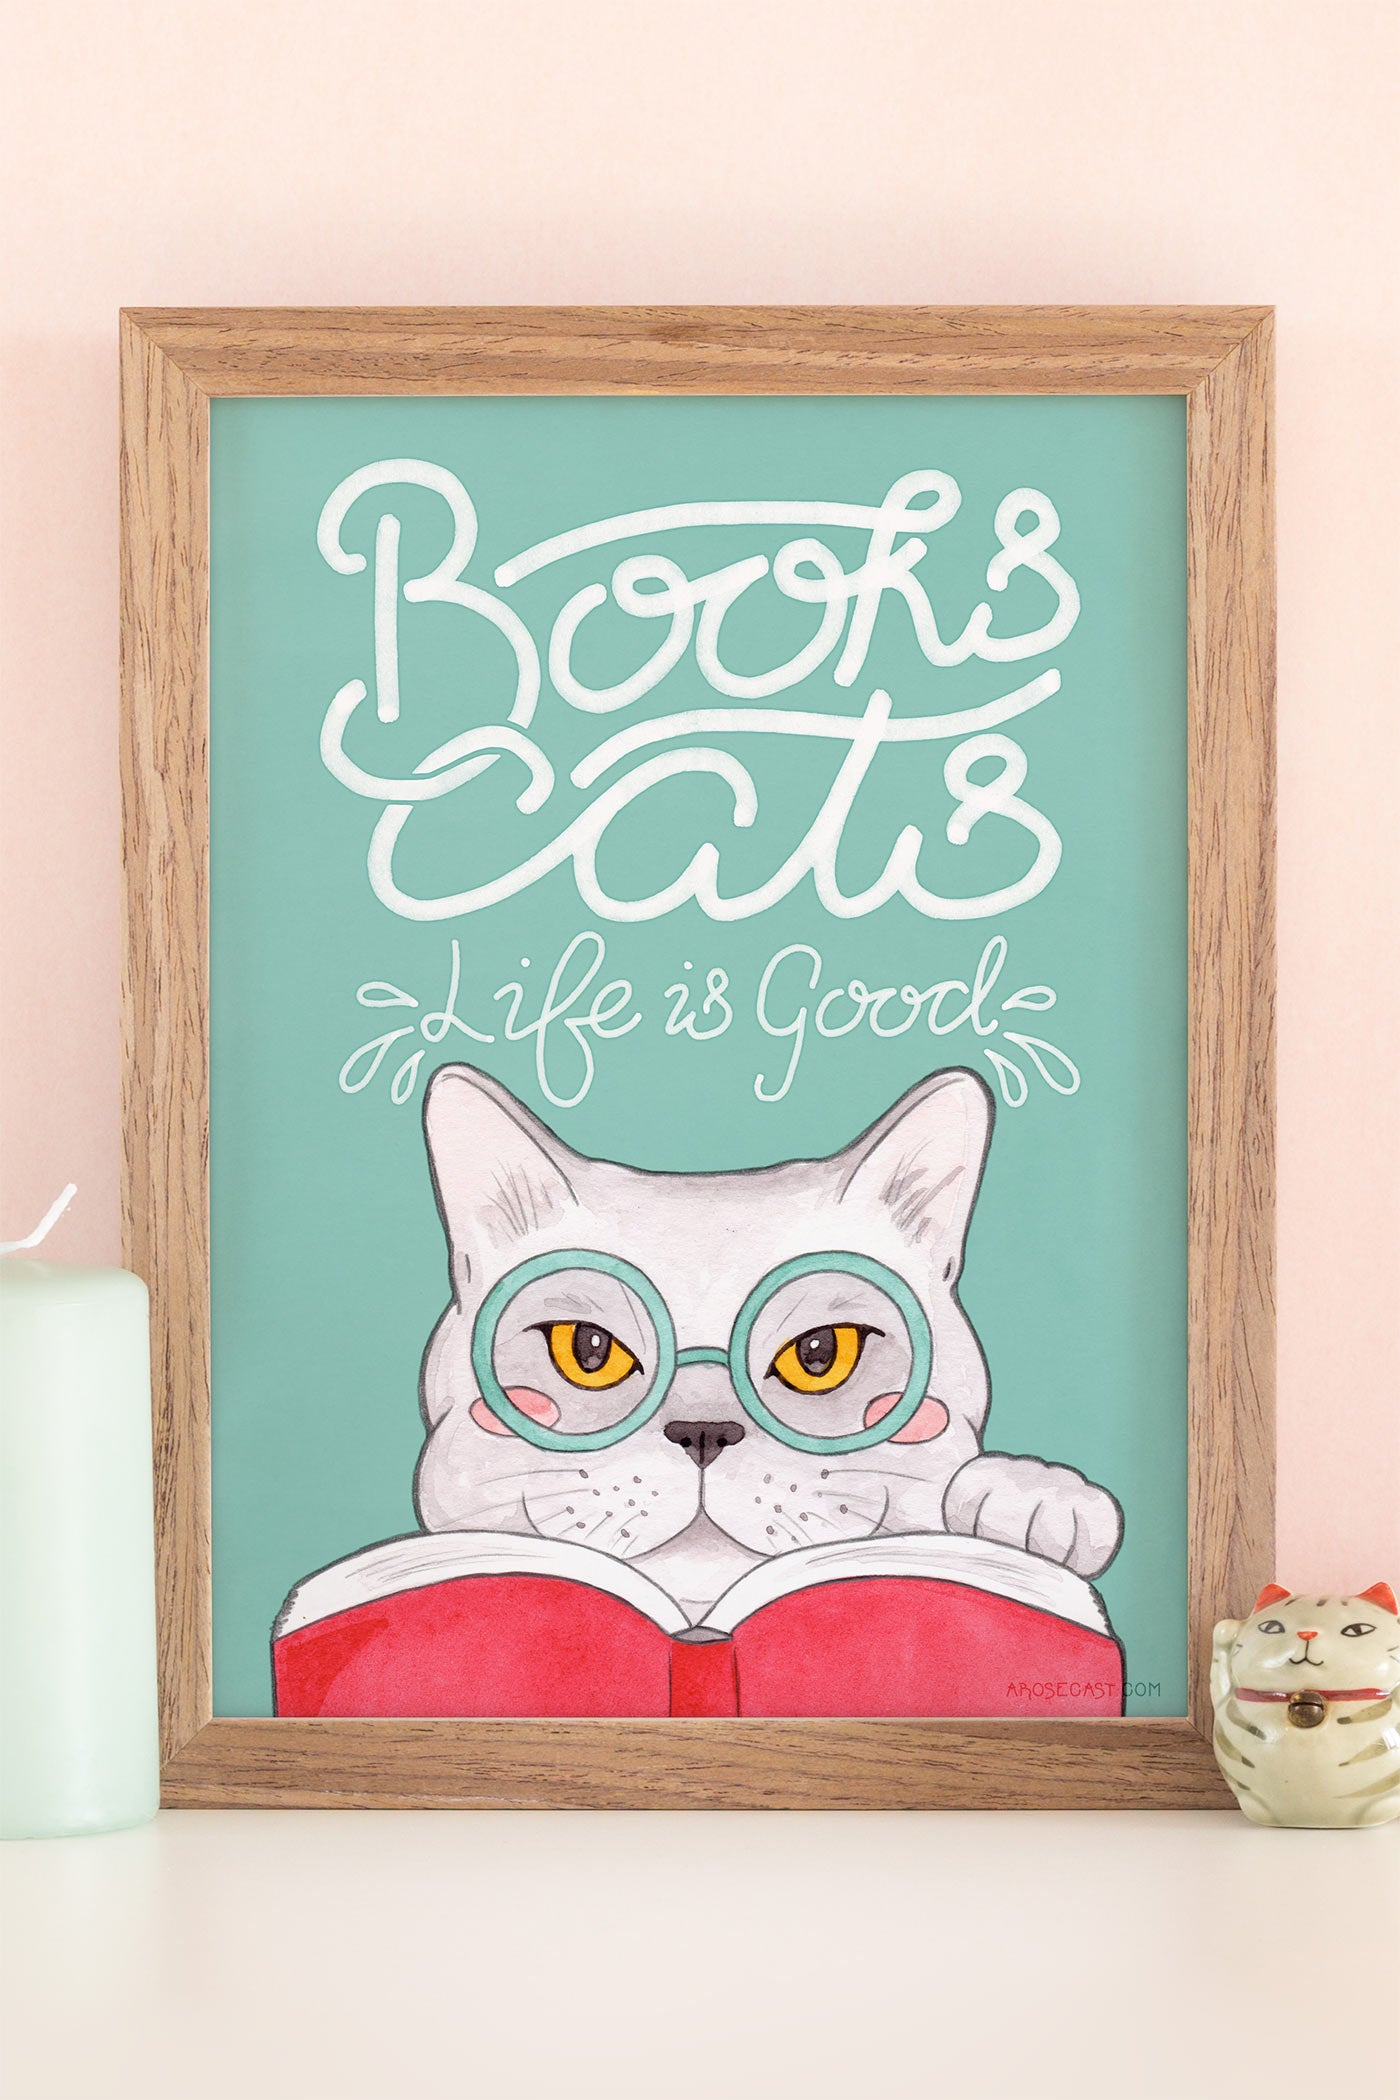 Books, Cats, Life is Good / Edward Gorey Quote Illustrated Art Print - A Rose Cast